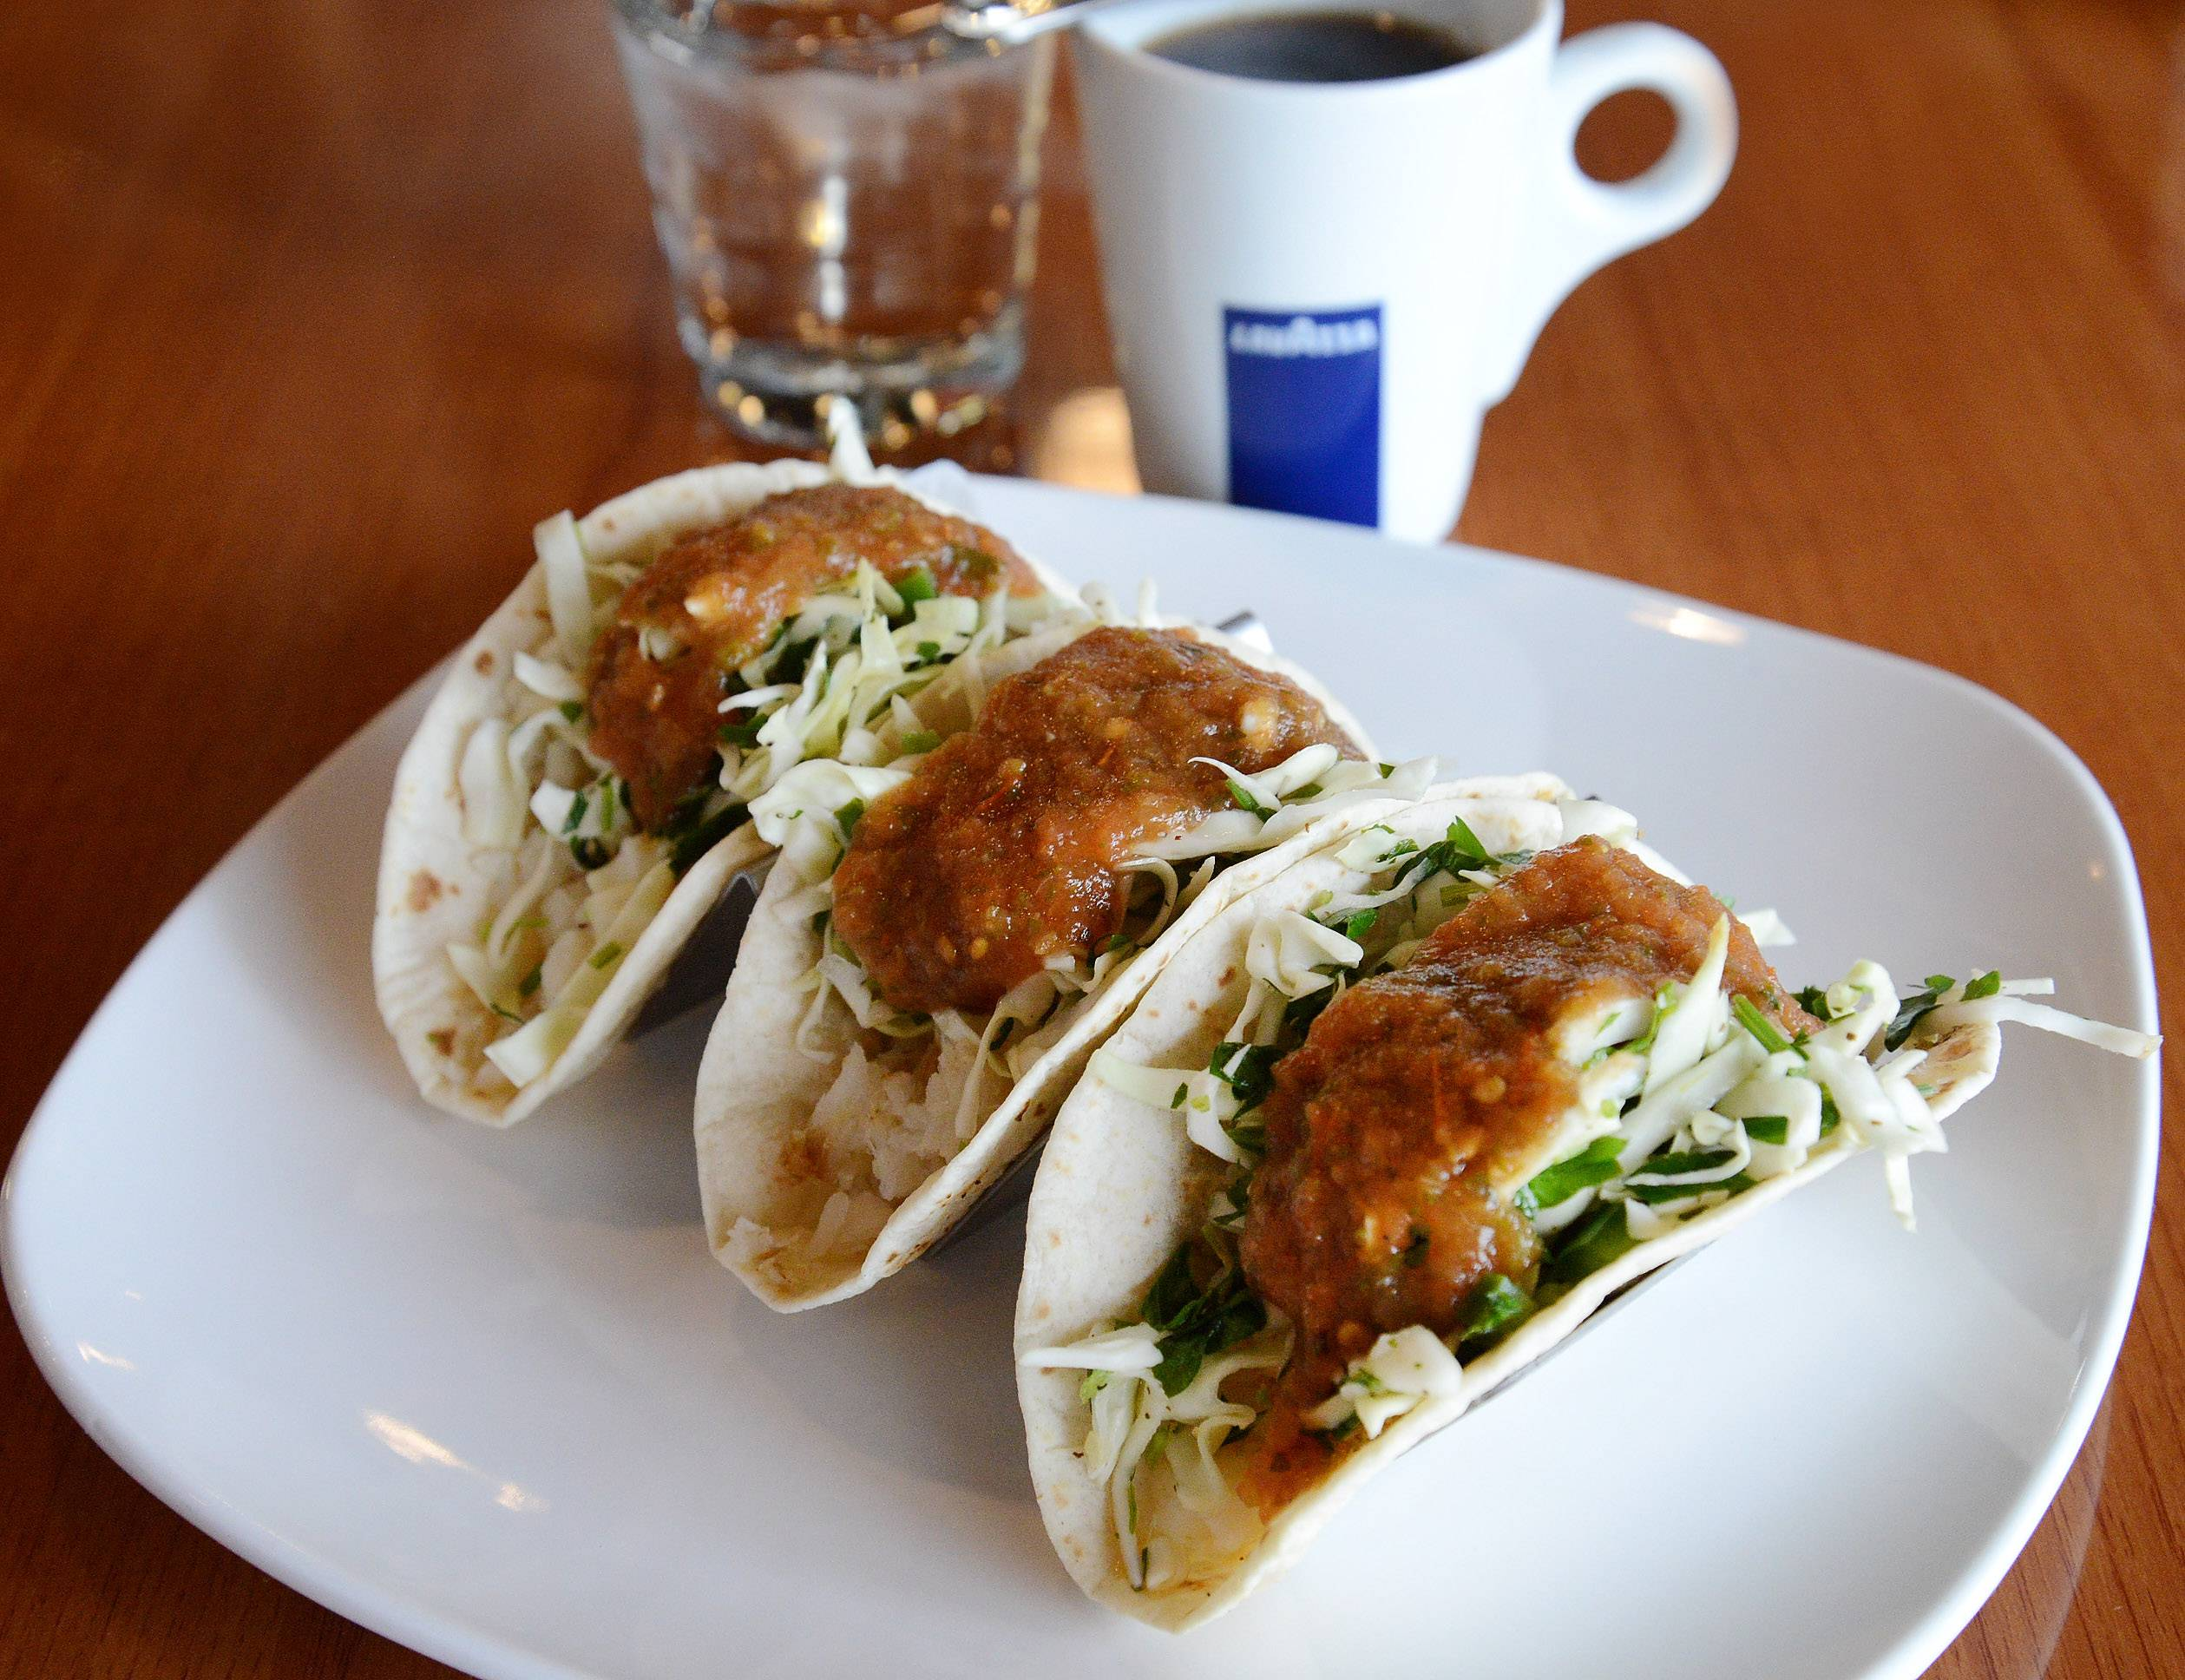 For those who like fish tacos, Maple Cafe adds a twist by marinating the fish in rum before adding the jalapeños and salsa verde to the three flour tortillas.